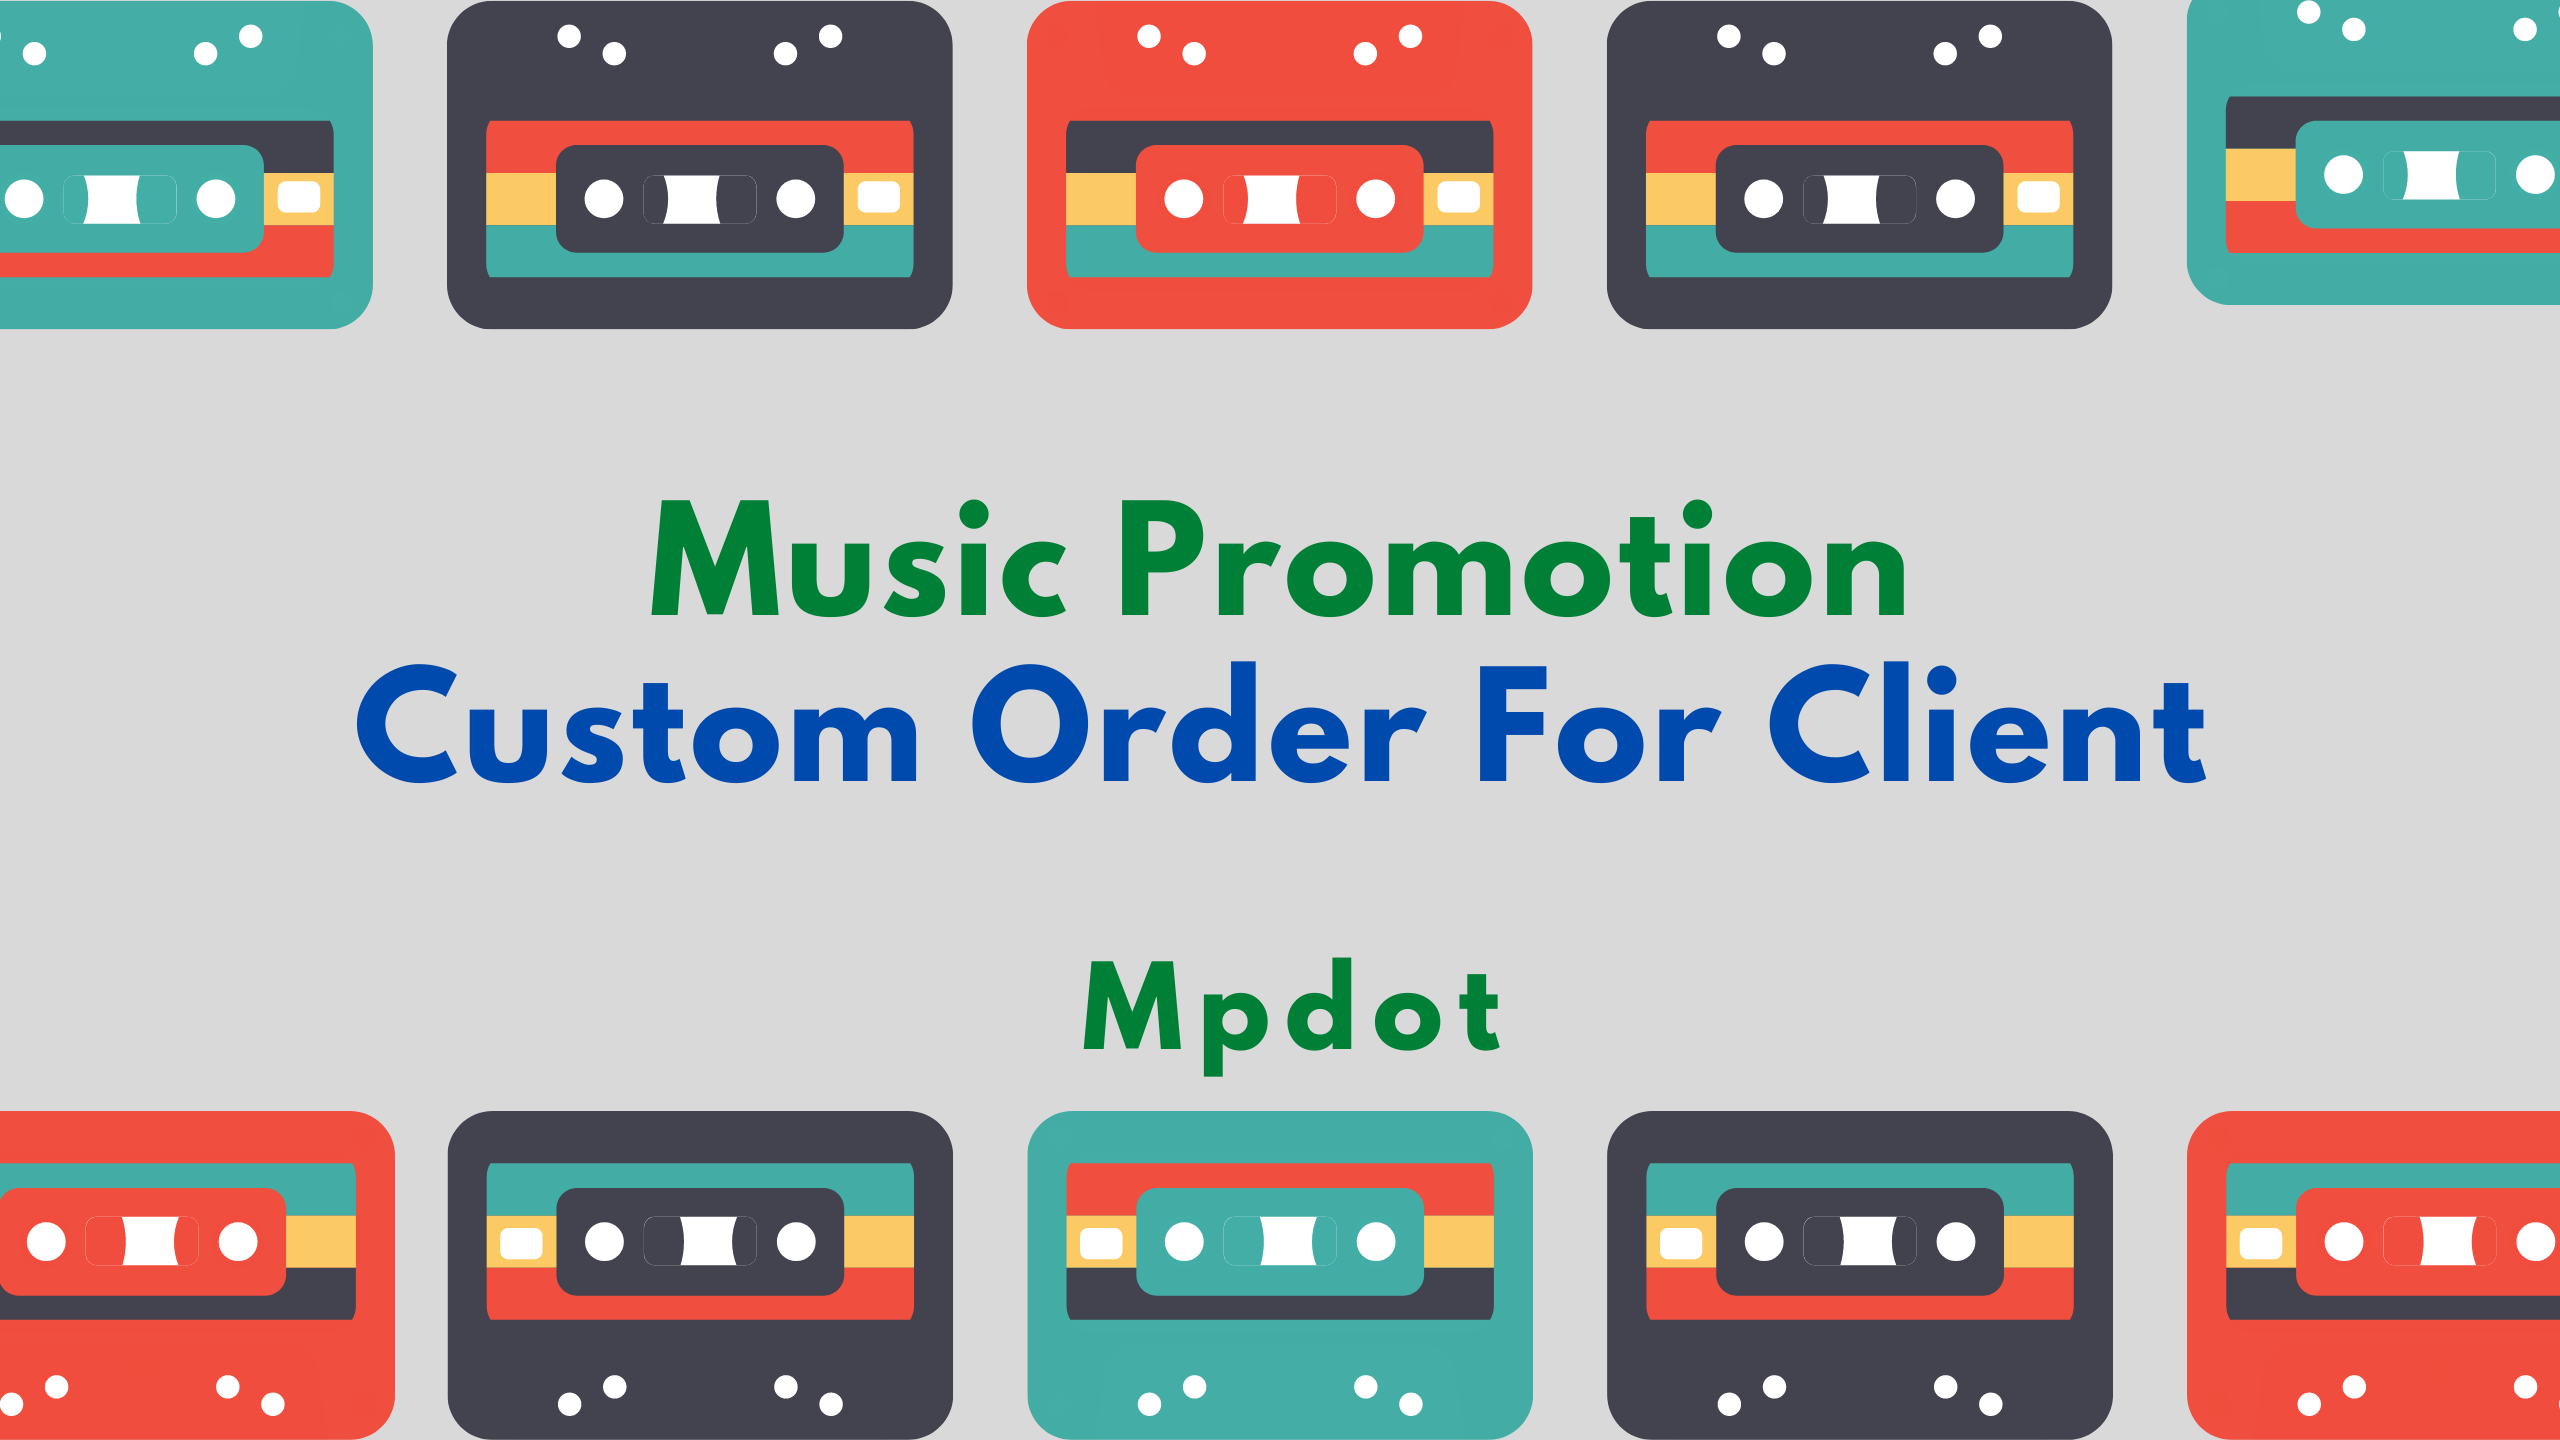 Music Promotion Custom Order For Client